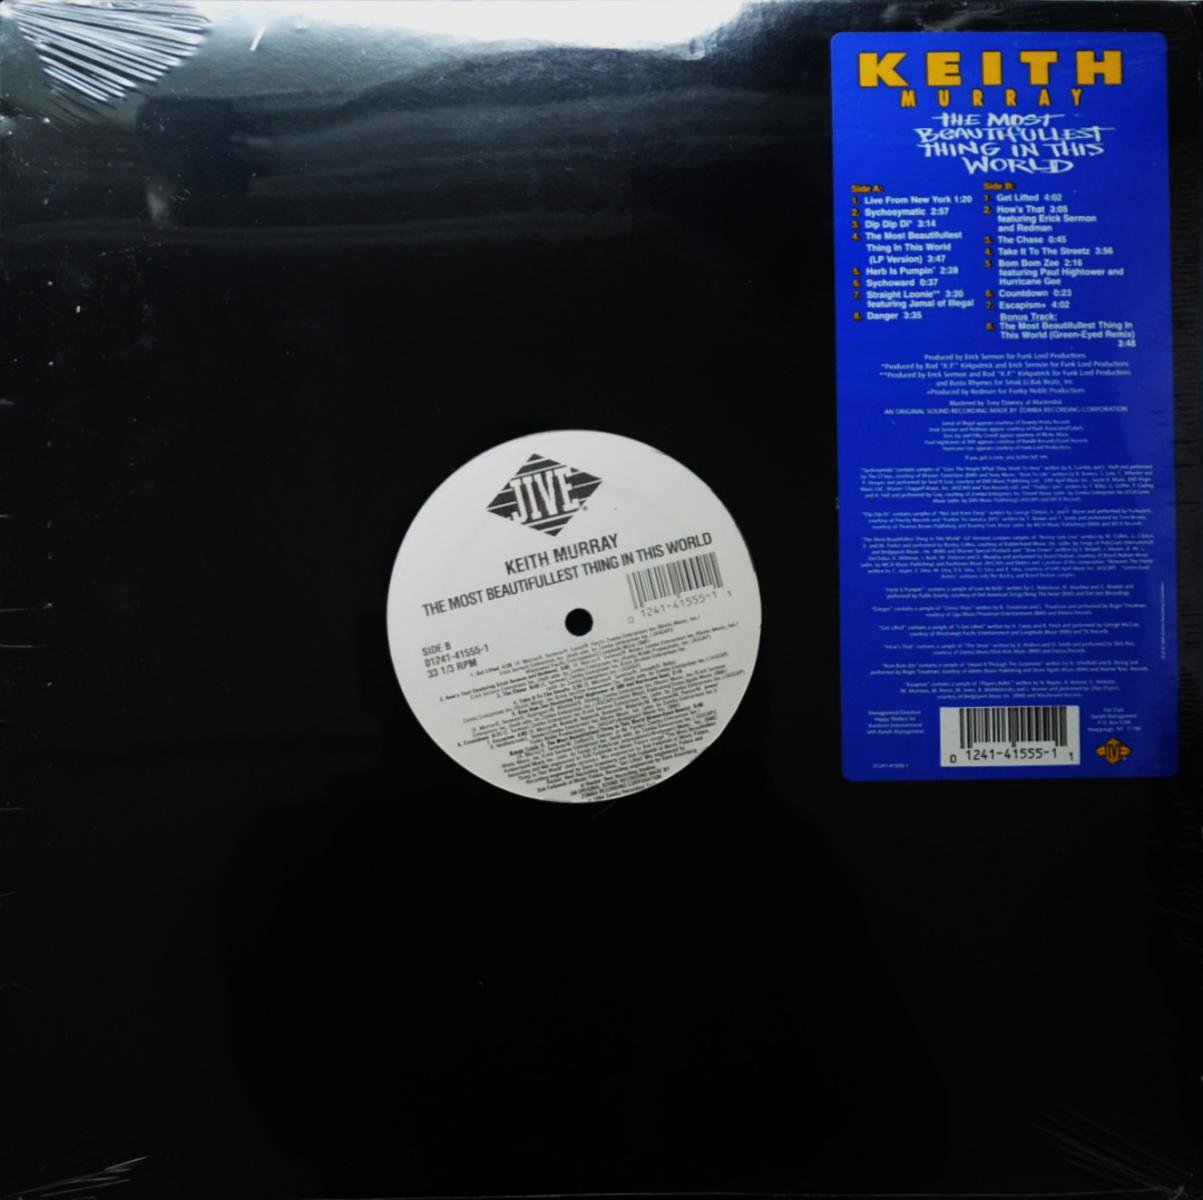 KEITH MURRAY / THE MOST BEAUTIFULLEST THING IN THIS WORLD (LP)